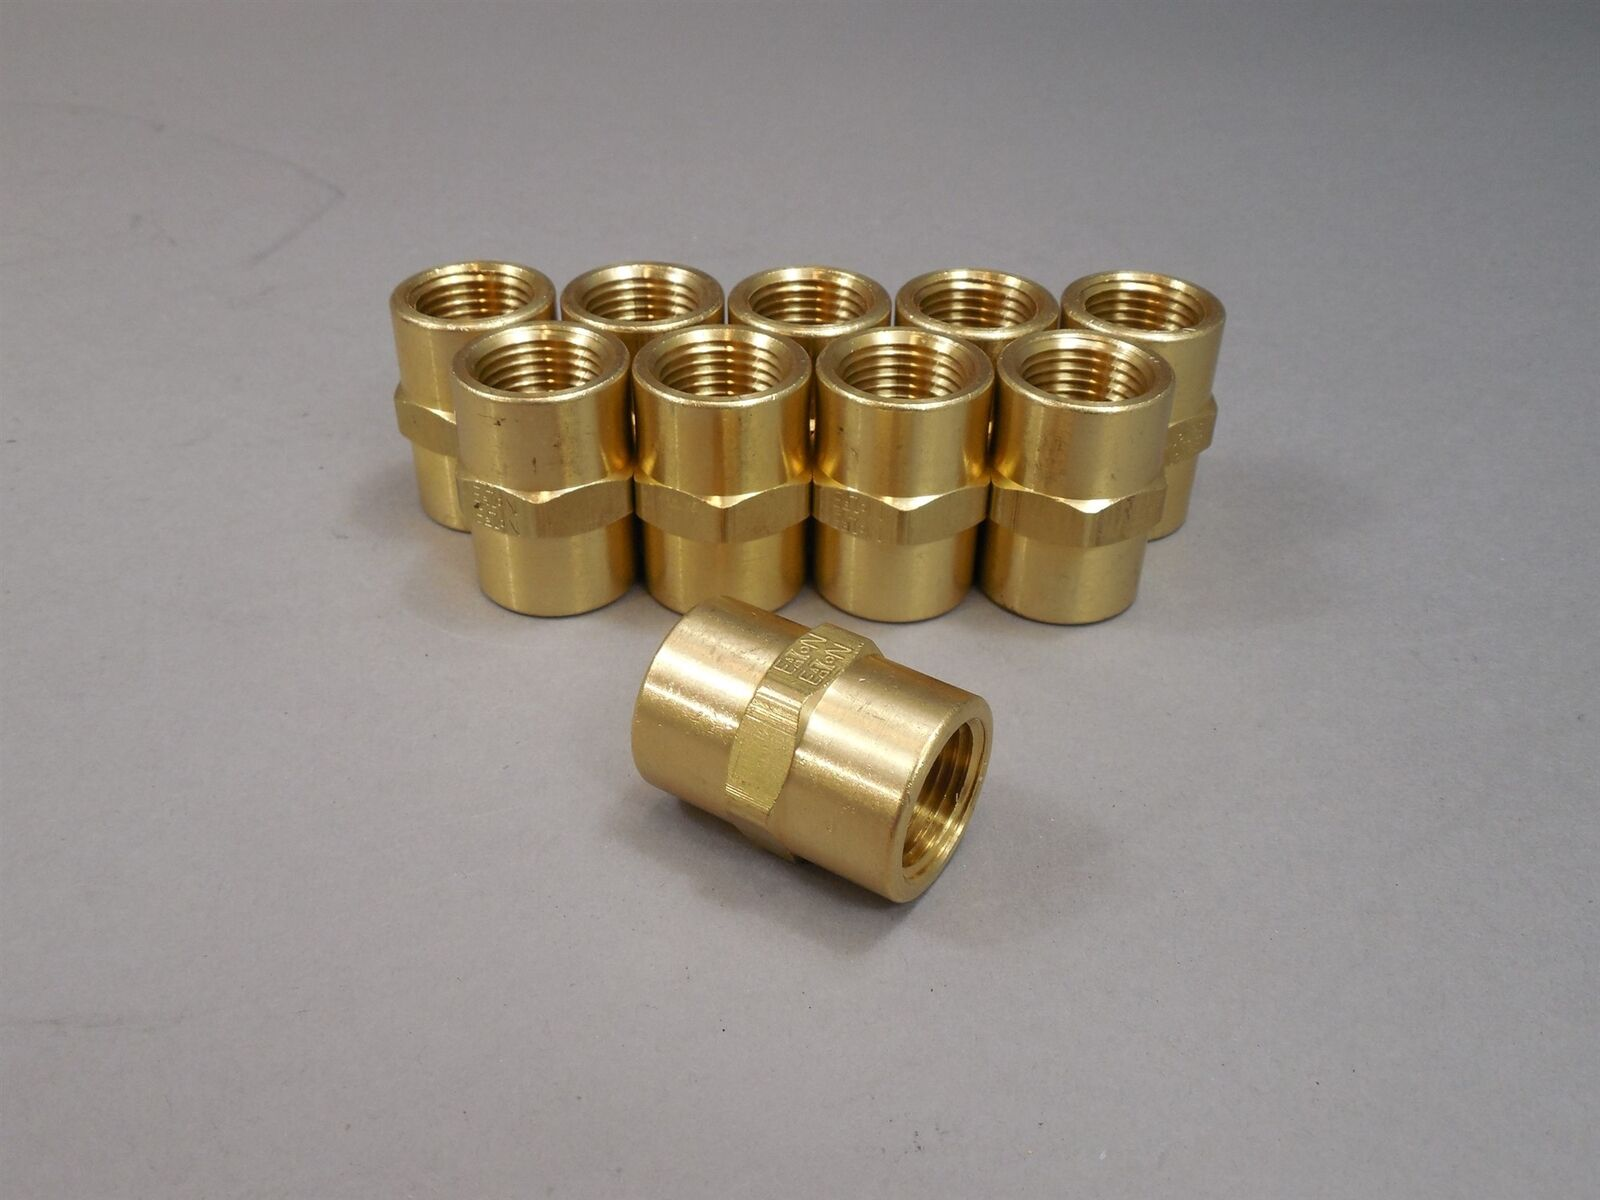 Lot of 10 Eaton Brass Hex Coupling 1 2  Union